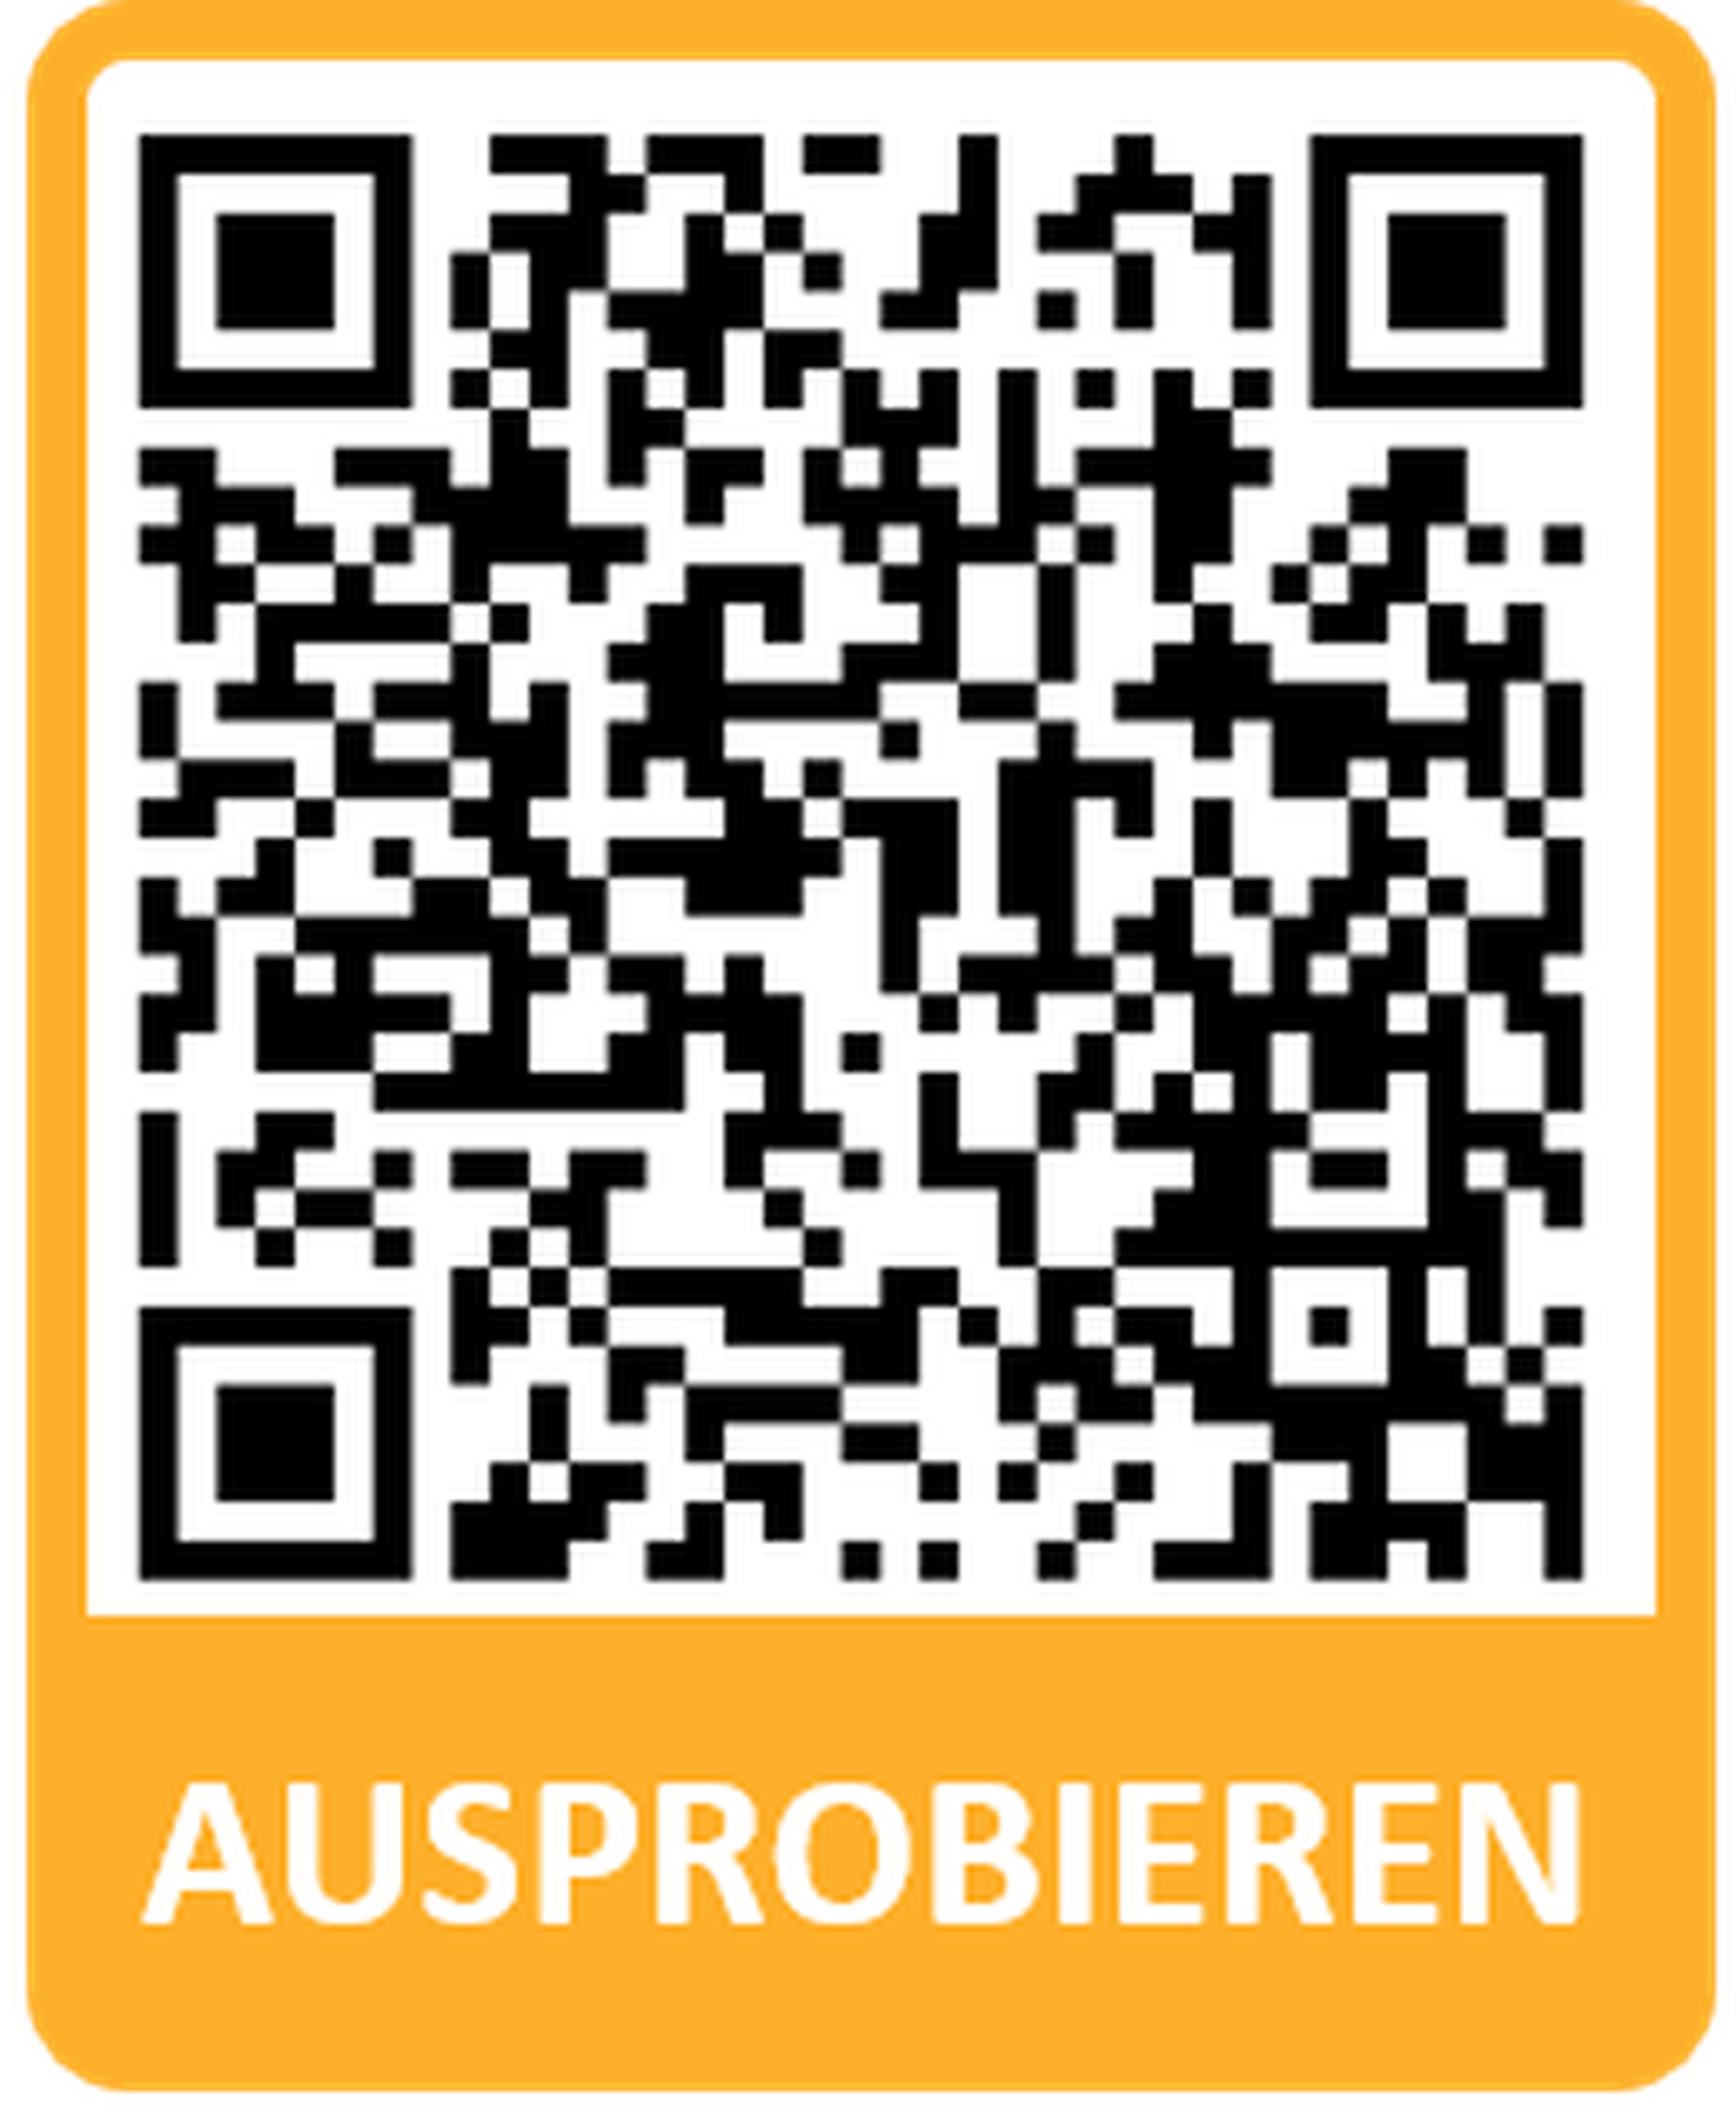 AT-Mobile-Puzzle-Ad-QR Code.png